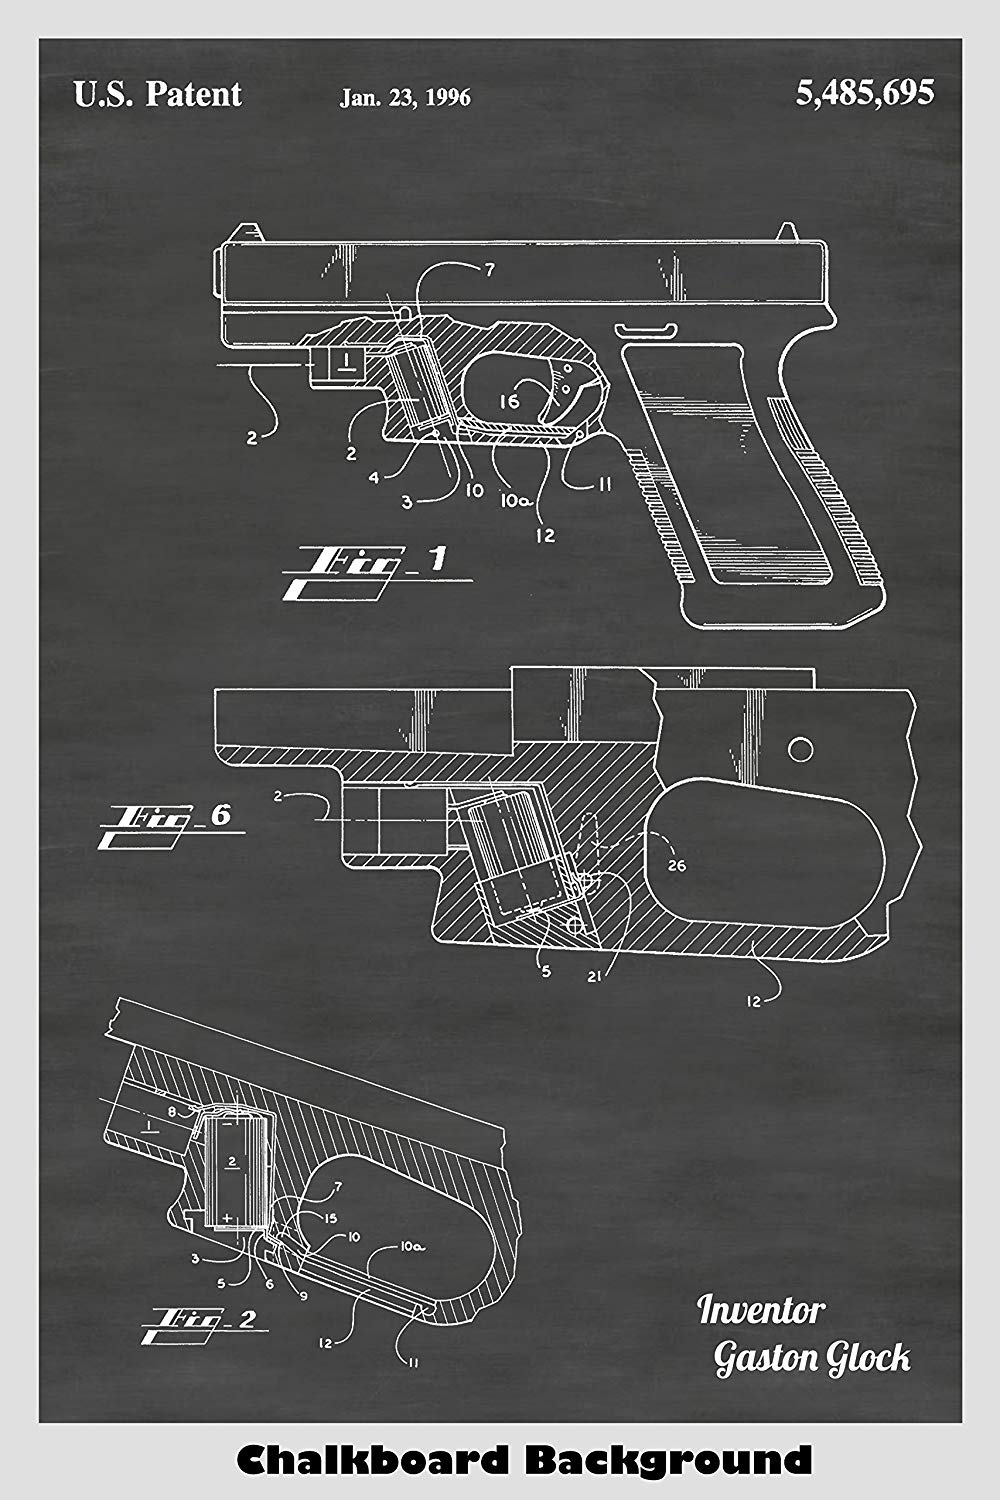 Glock Pistol With Laser SIght Patent Print Art Poster